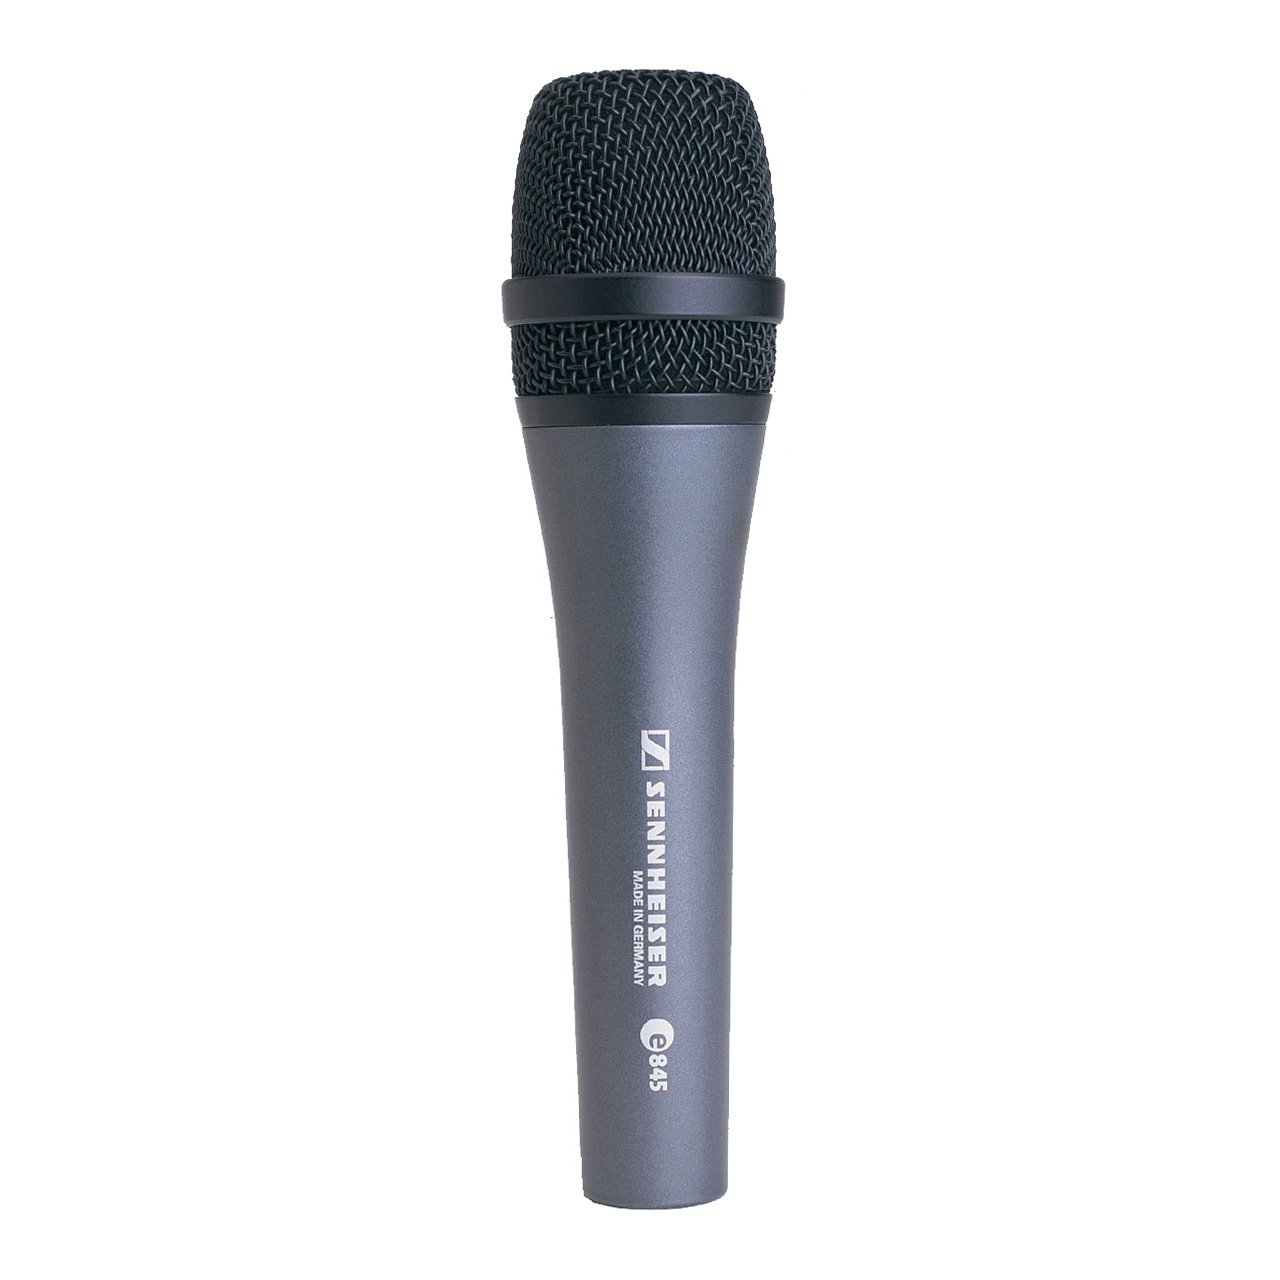 Dynamic Microphones - Sennheiser E 845 - Dynamic Super Cardioid Handheld Vocal Microphone